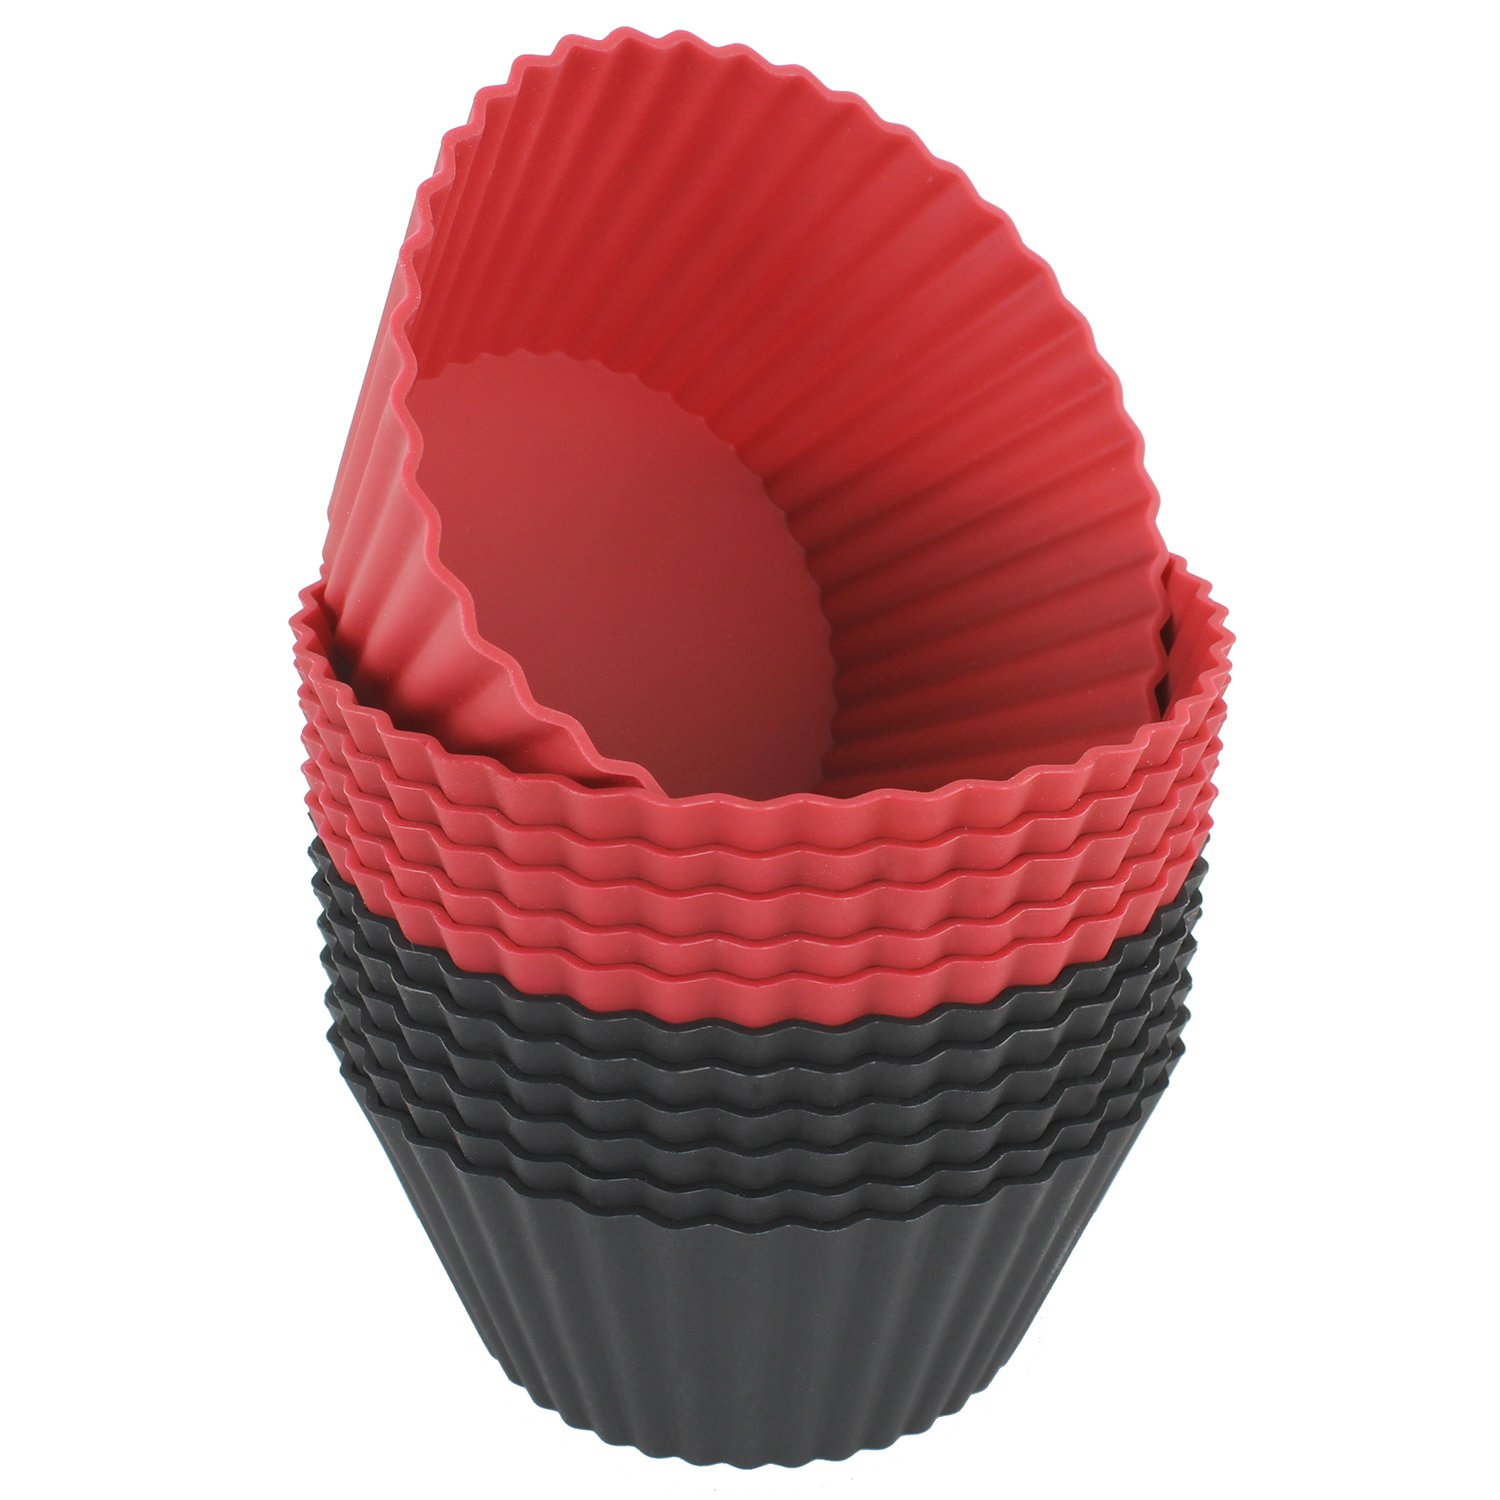 Freshware CB-320RB 12-Pack Silicone Jumbo Round Reusable Cupcake and Muffin Baking Cup, Black and Red Colors